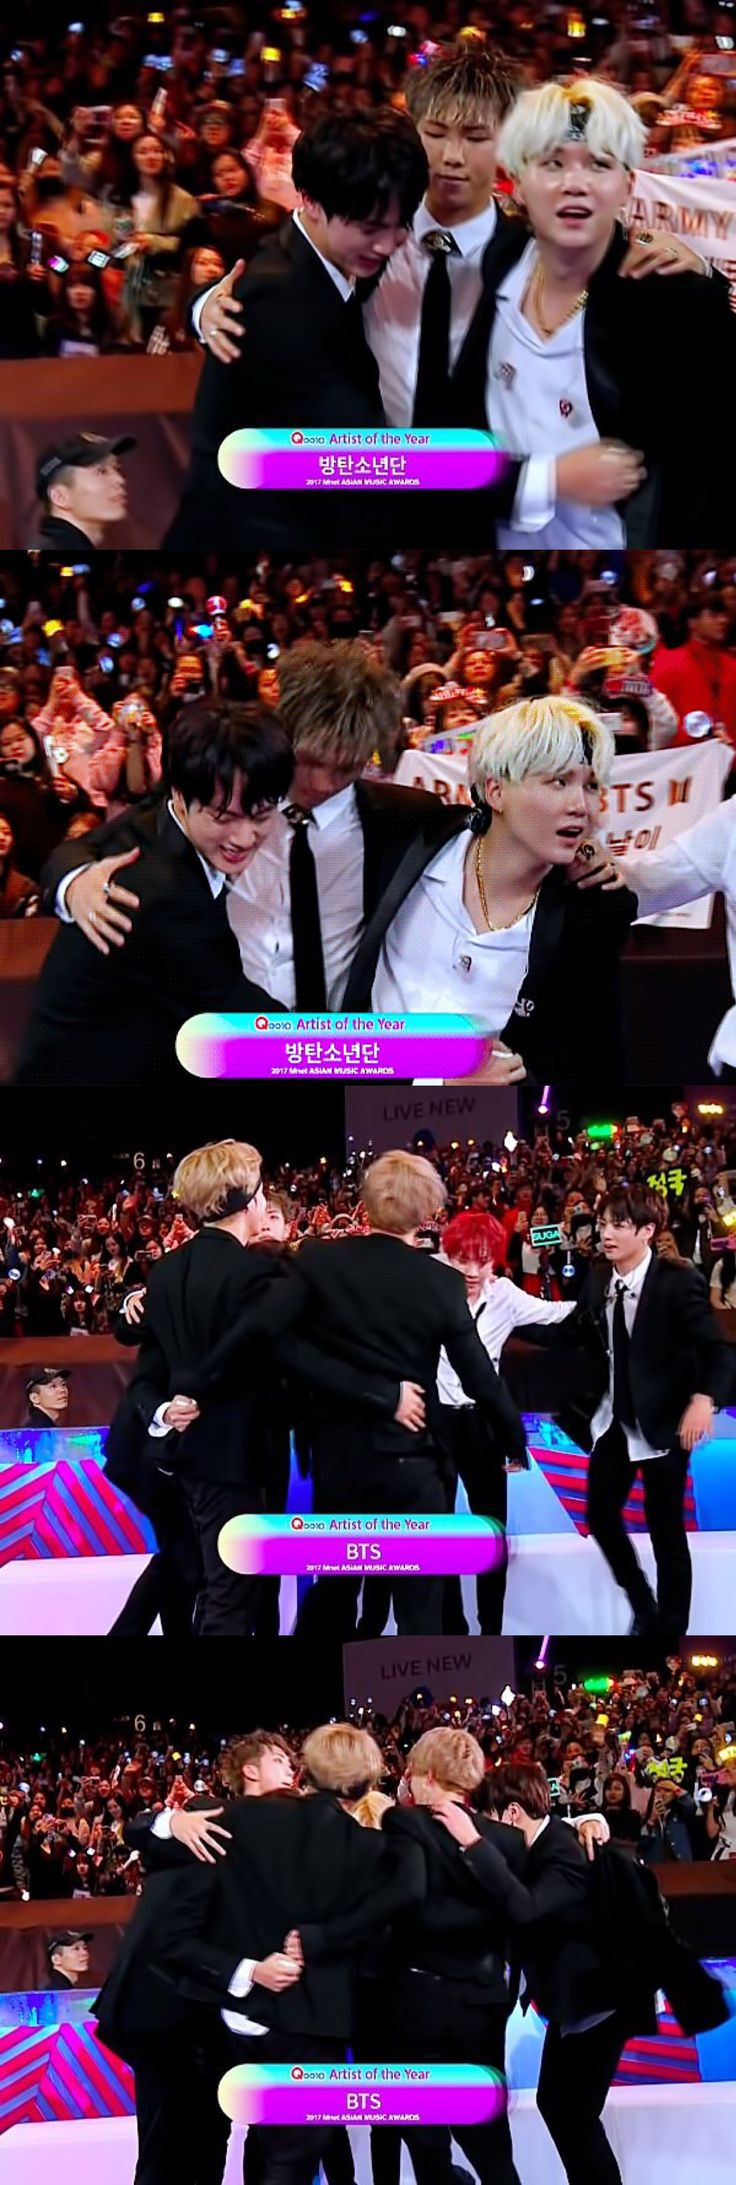 ❤️❤️Congratulations to BTS for winning Artist of the Year at MAMA 2017❤️❤️ // 171201 // #BTS // #MAMA2017